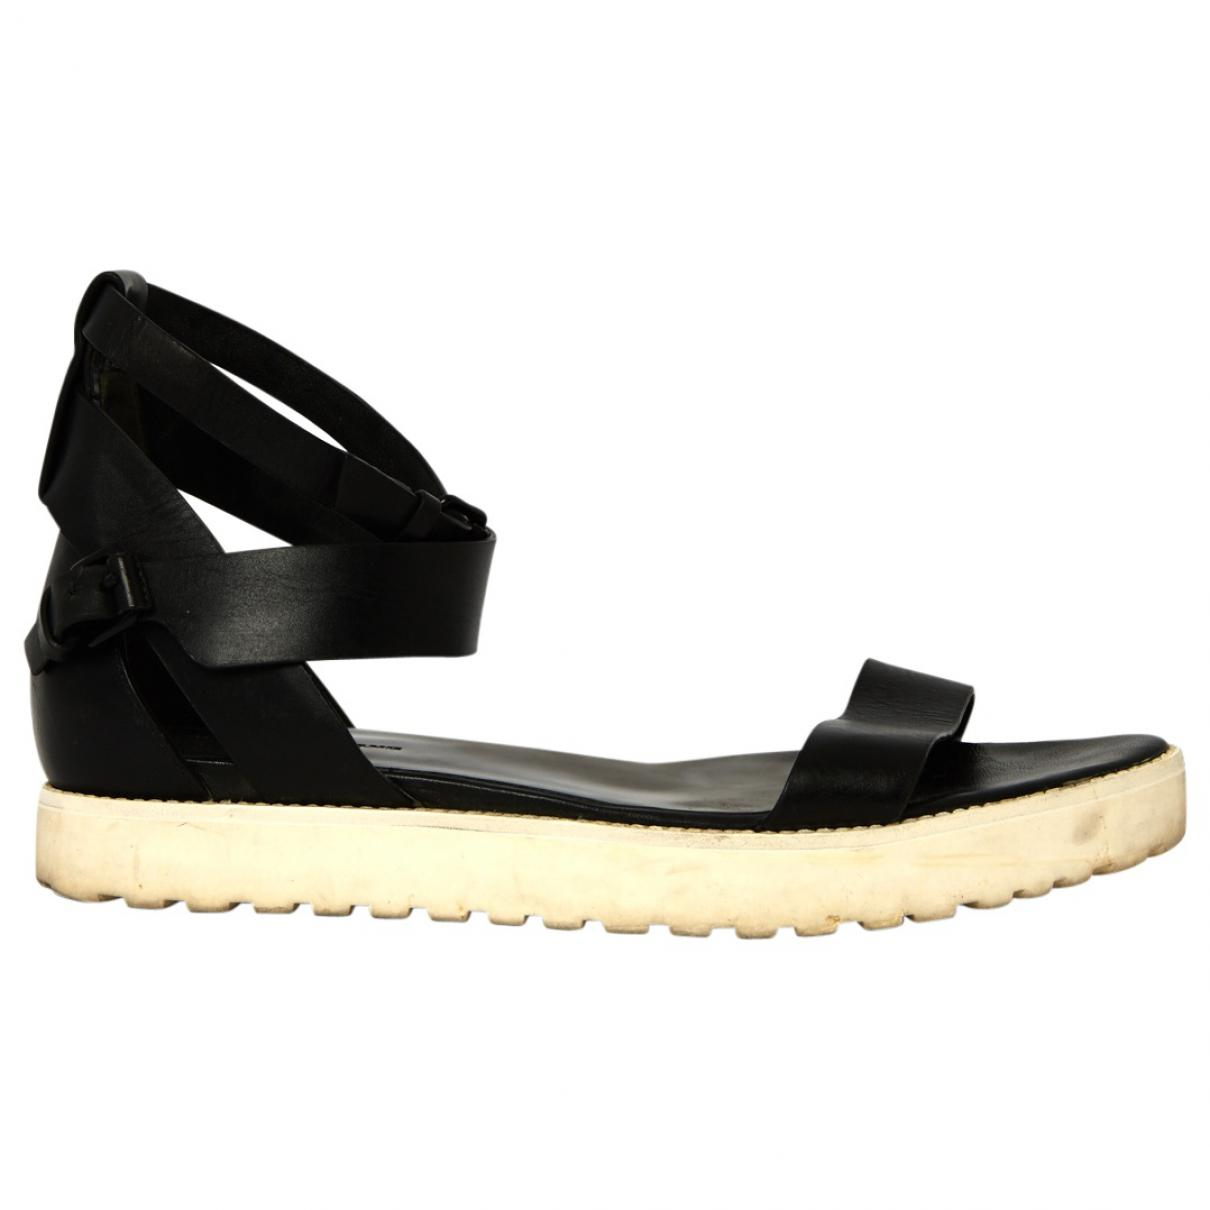 Pre-owned - Leather sandals Alexander Wang IZWDdqDR6